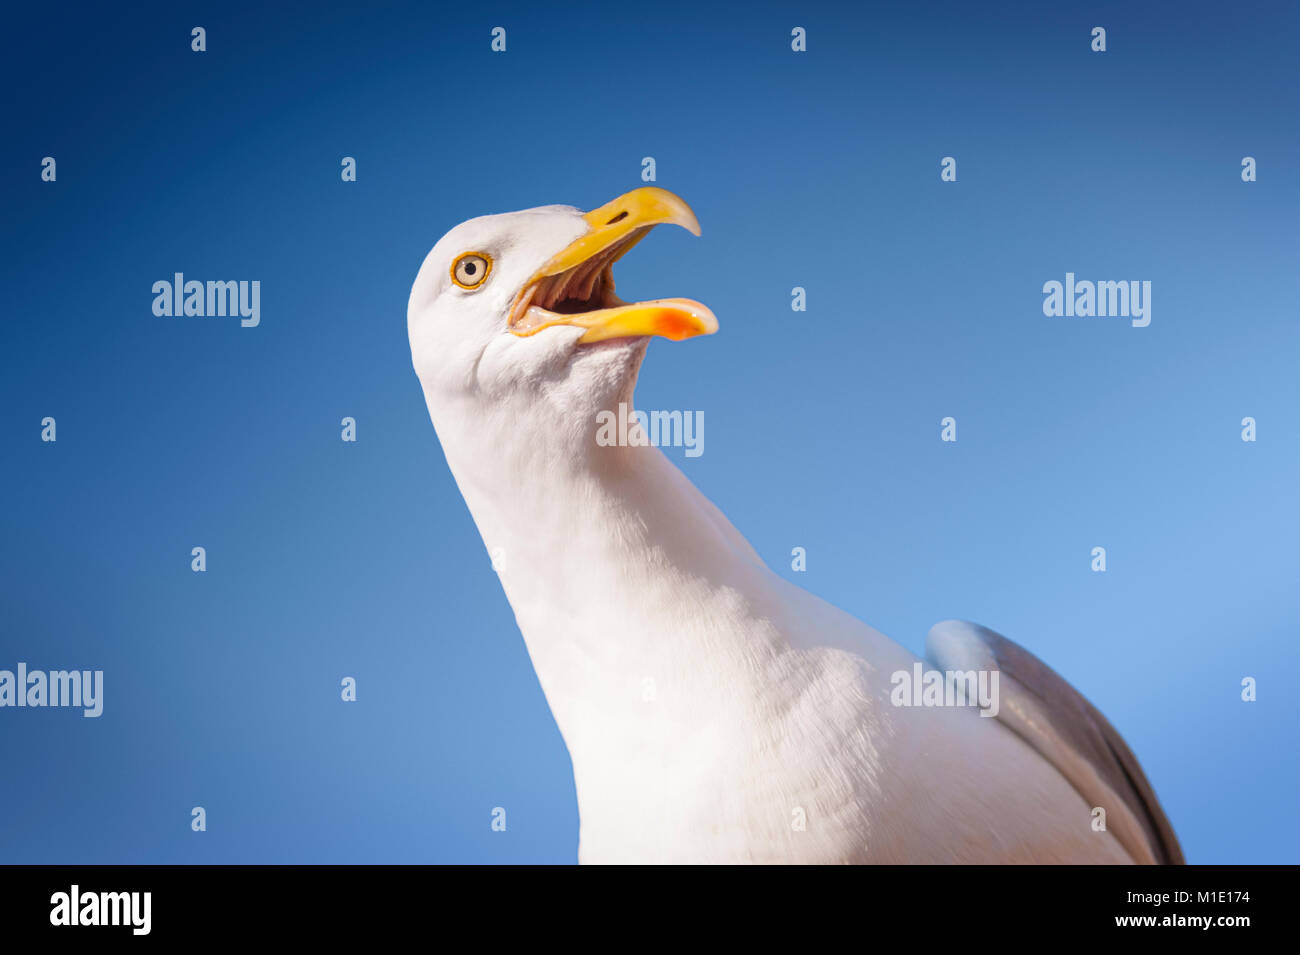 Angry Adult Seagull against Blue Sky. Brighton and Hove, East Sussex, UK - Stock Image